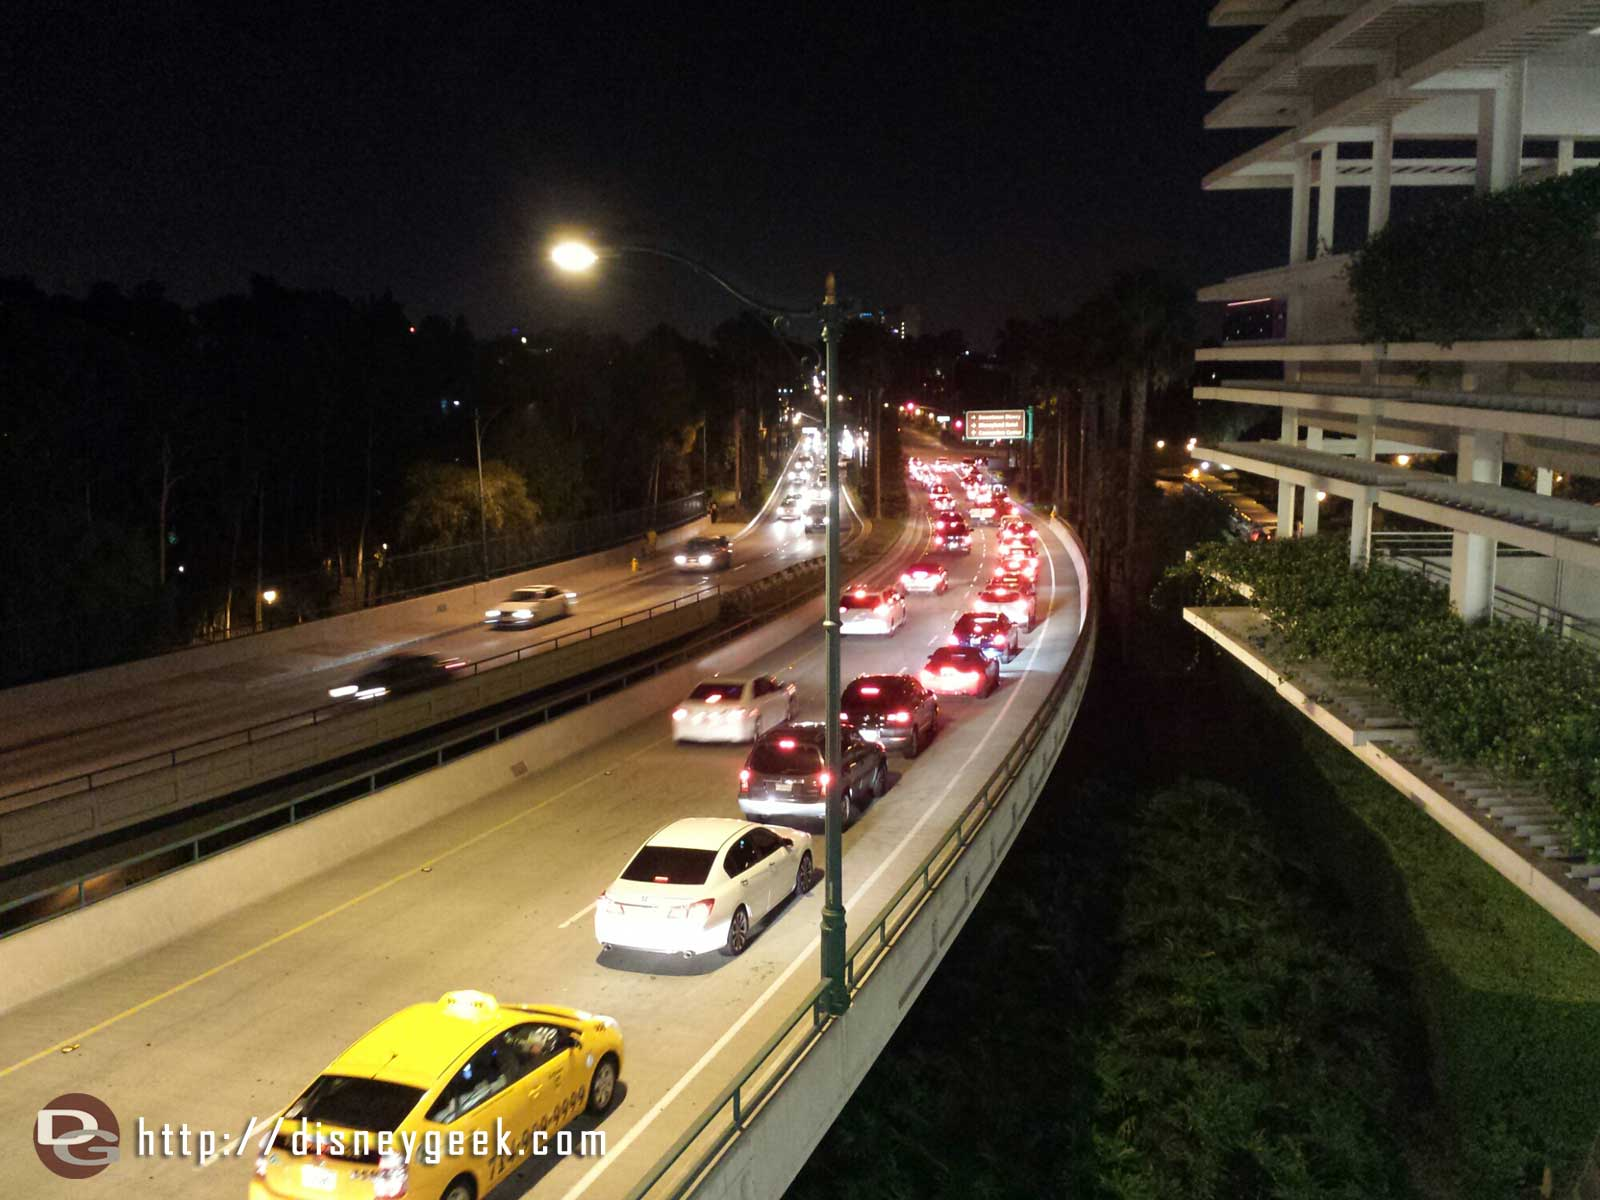 FYI for those just arriving Disneyland drive right turn lane for Downtown Disney is backed up to the overpass